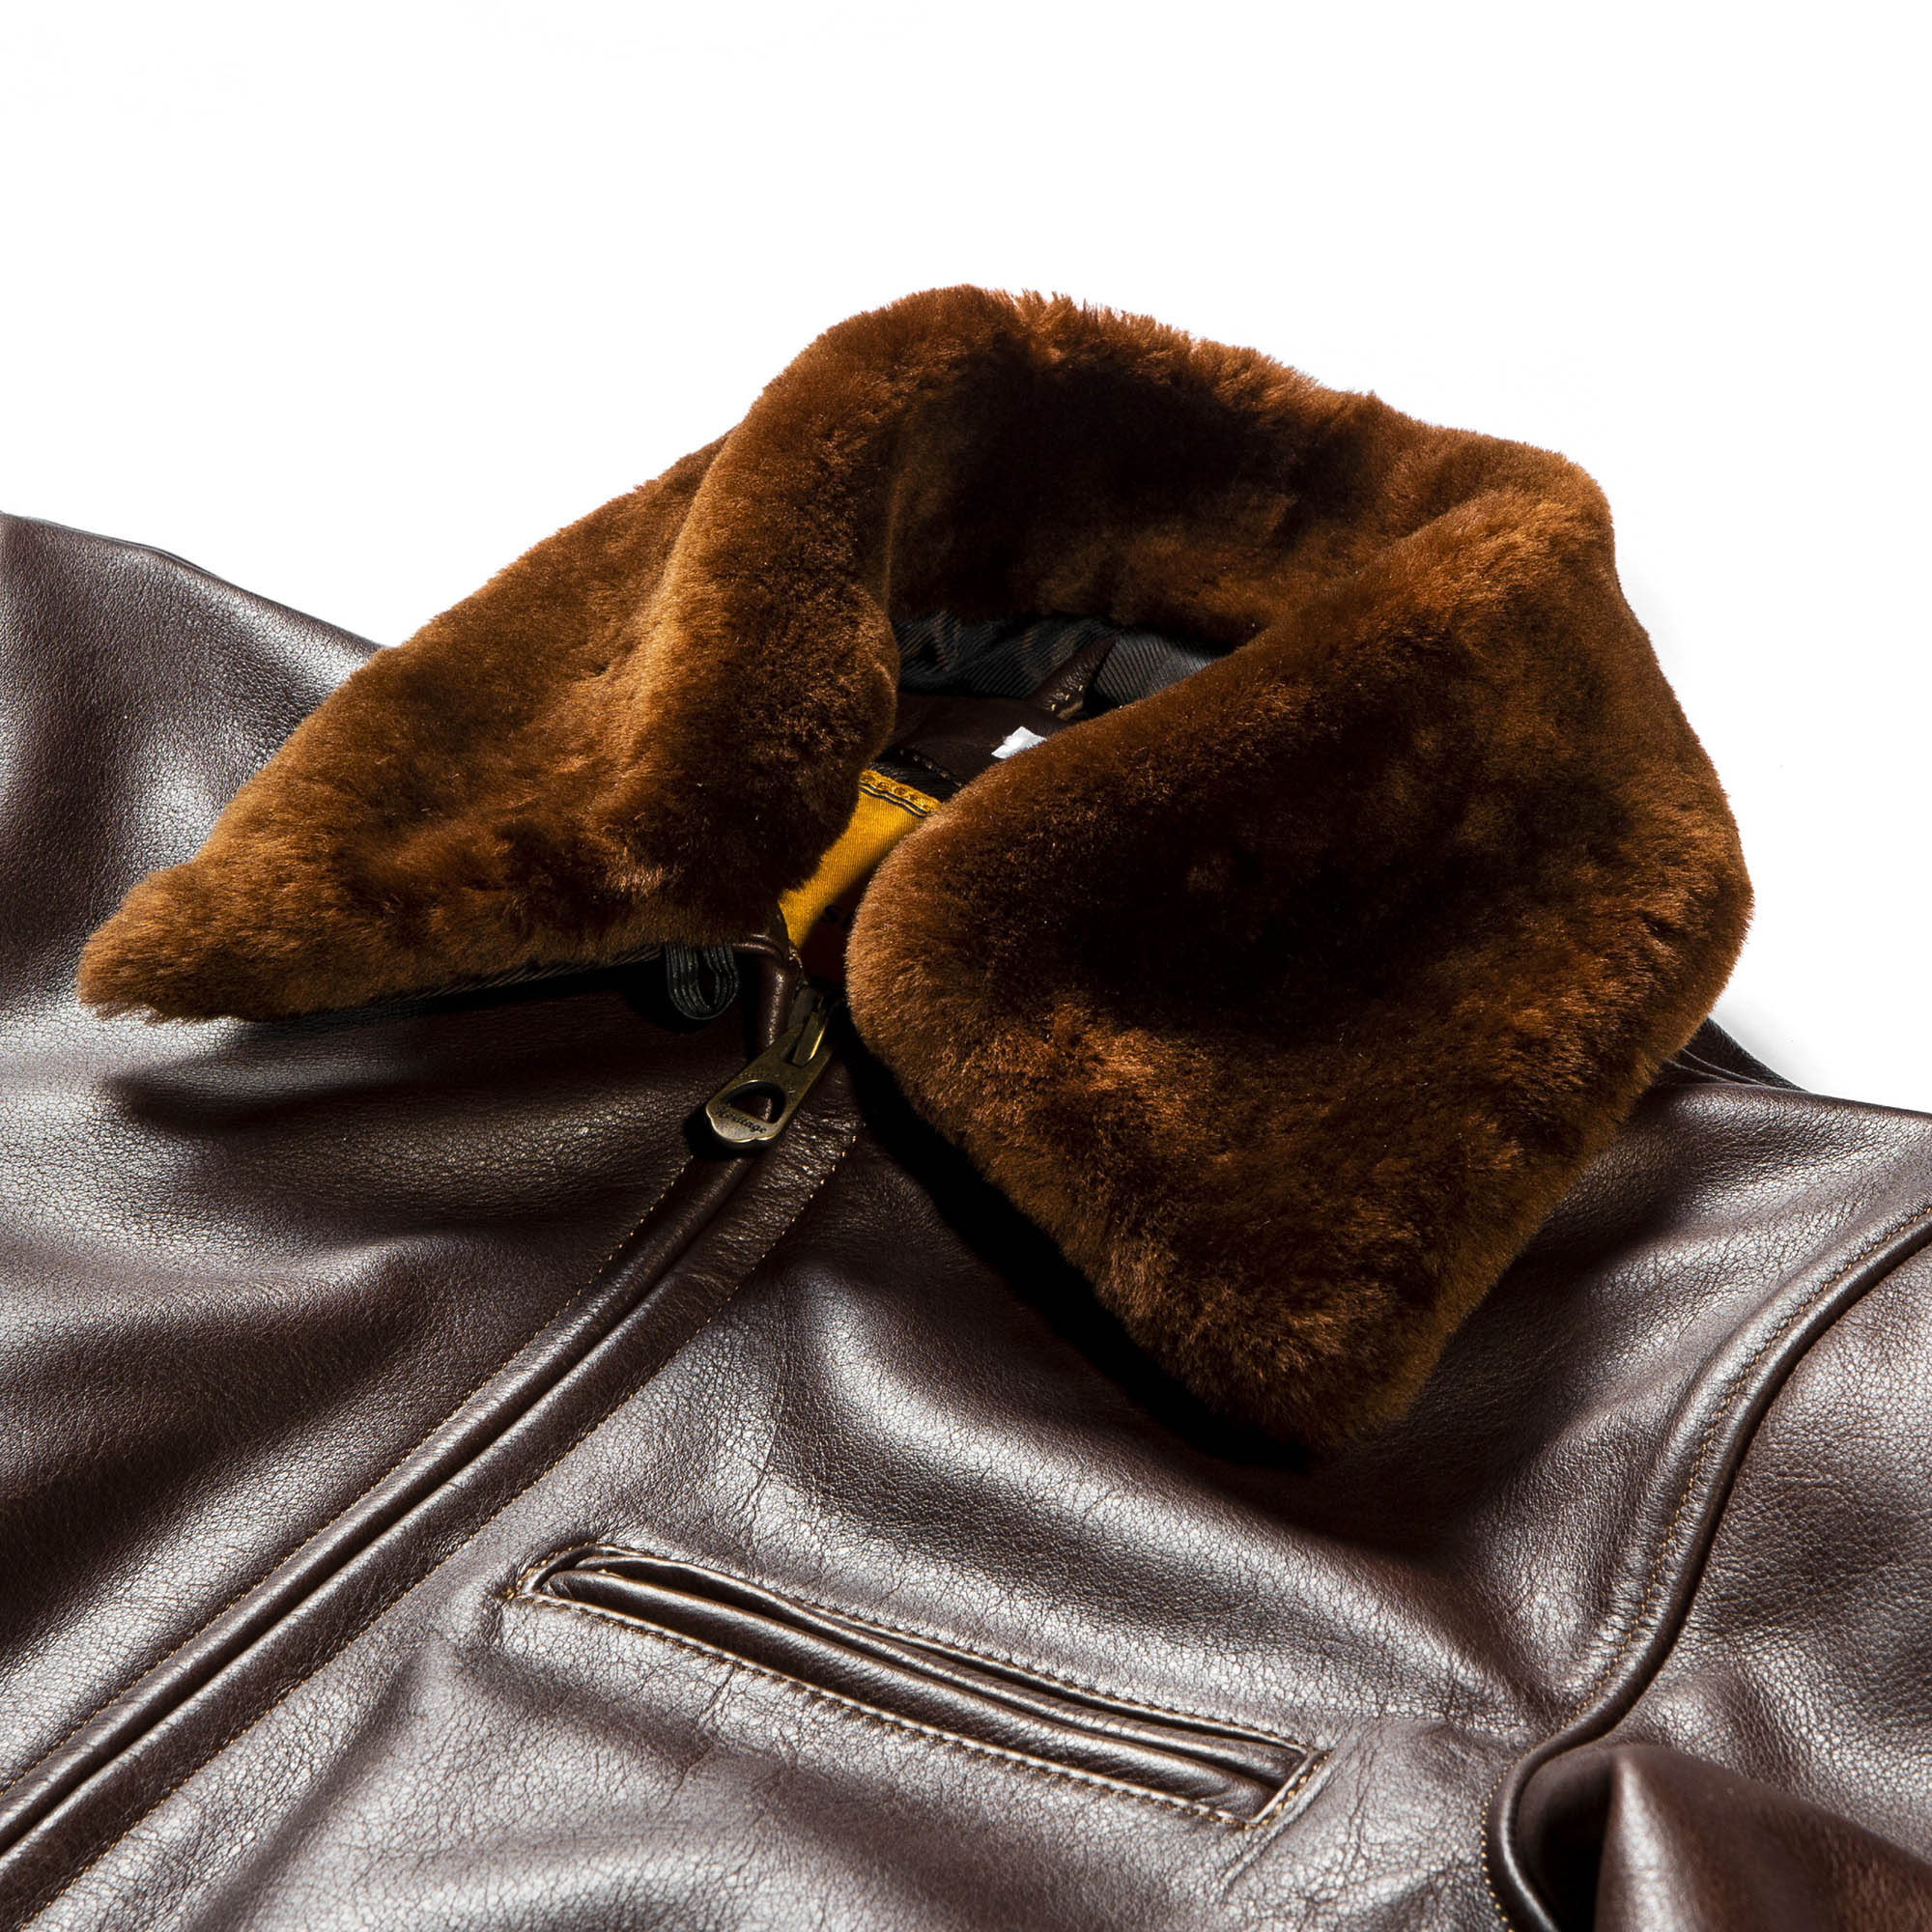 shangri-la-heritage-varenne-brown-steerhide-shearling-jacket-still-life-collar